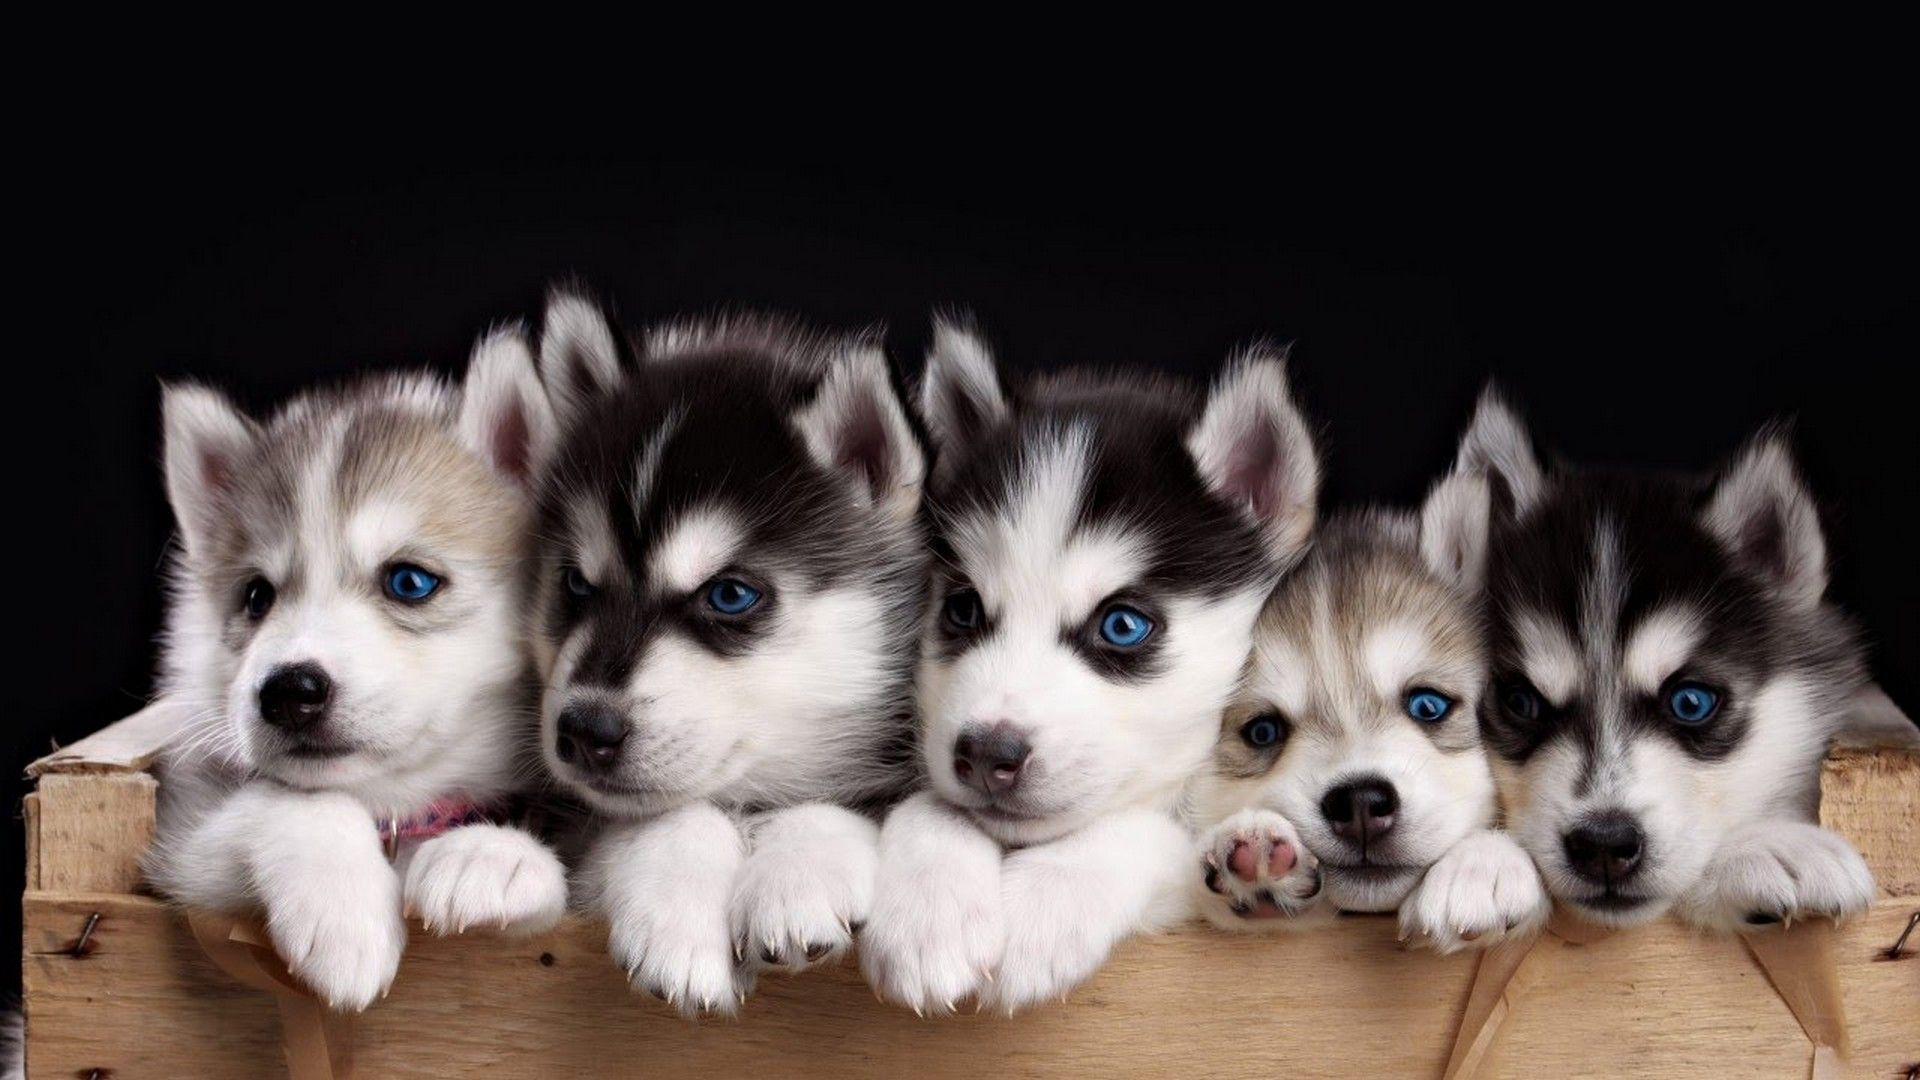 Funny Puppies Desktop Backgrounds Hd Cute Husky Puppies